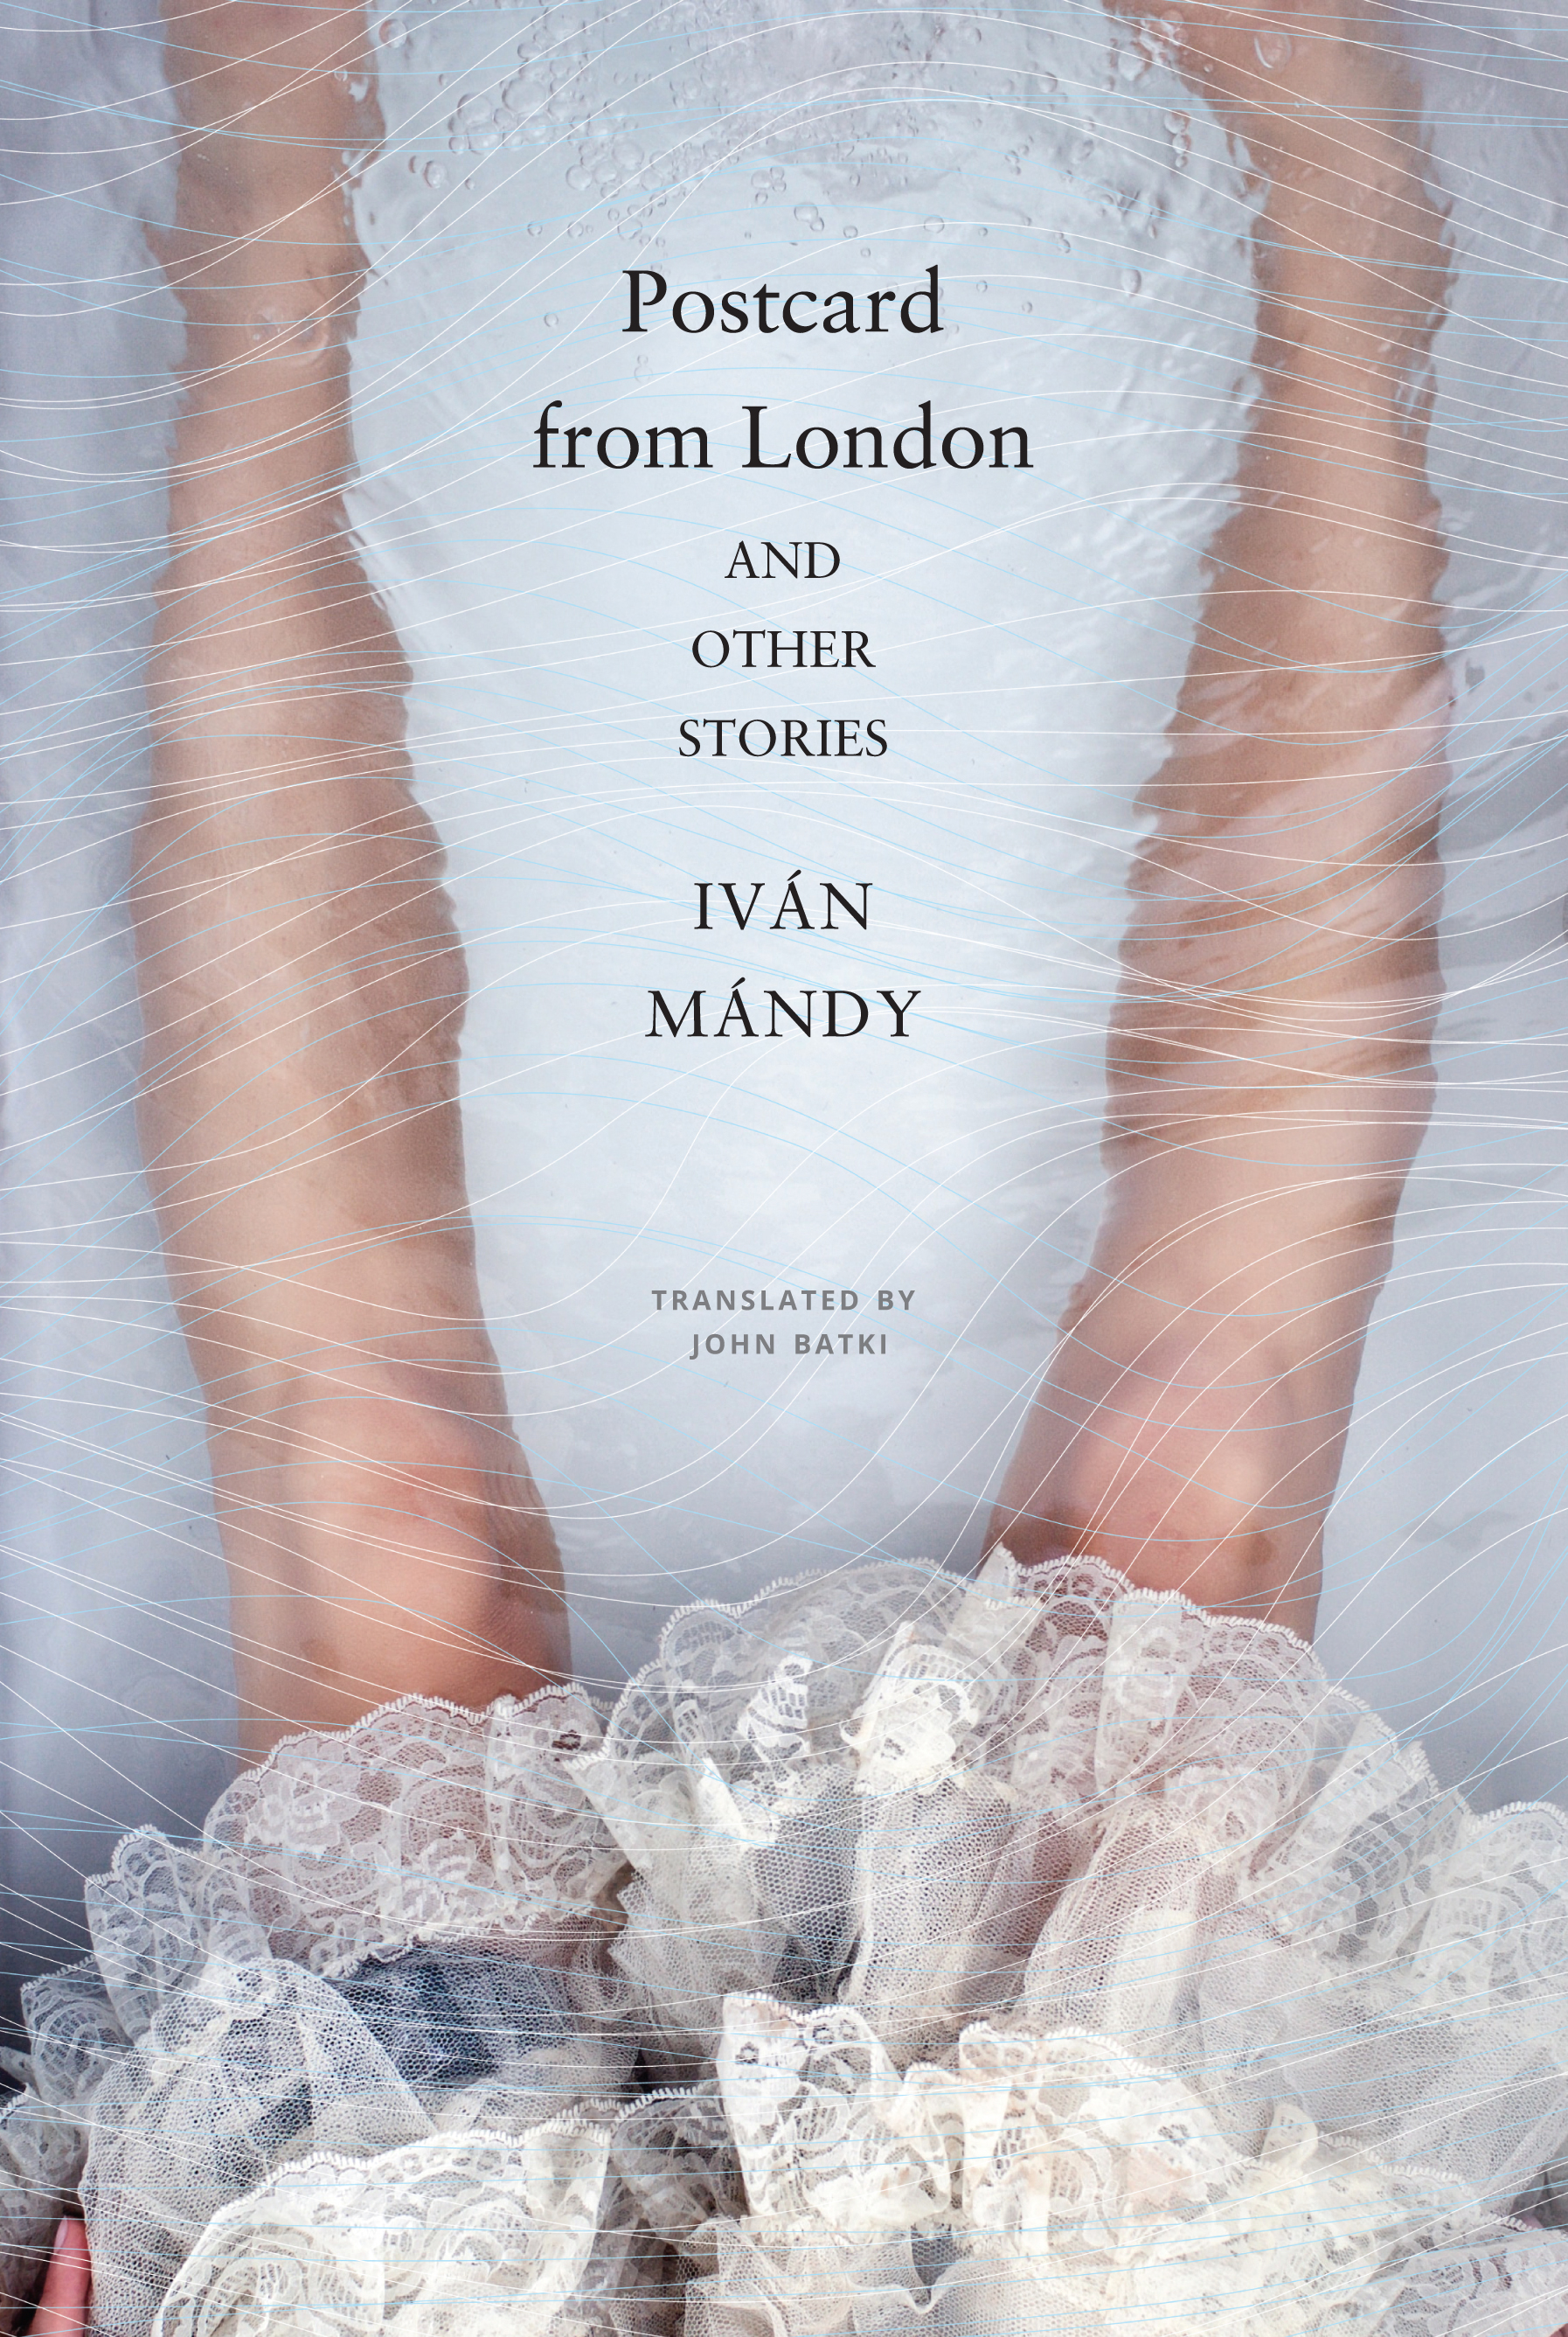 Postcard from London and Other Stories by Iván Mándy   Seagull Books